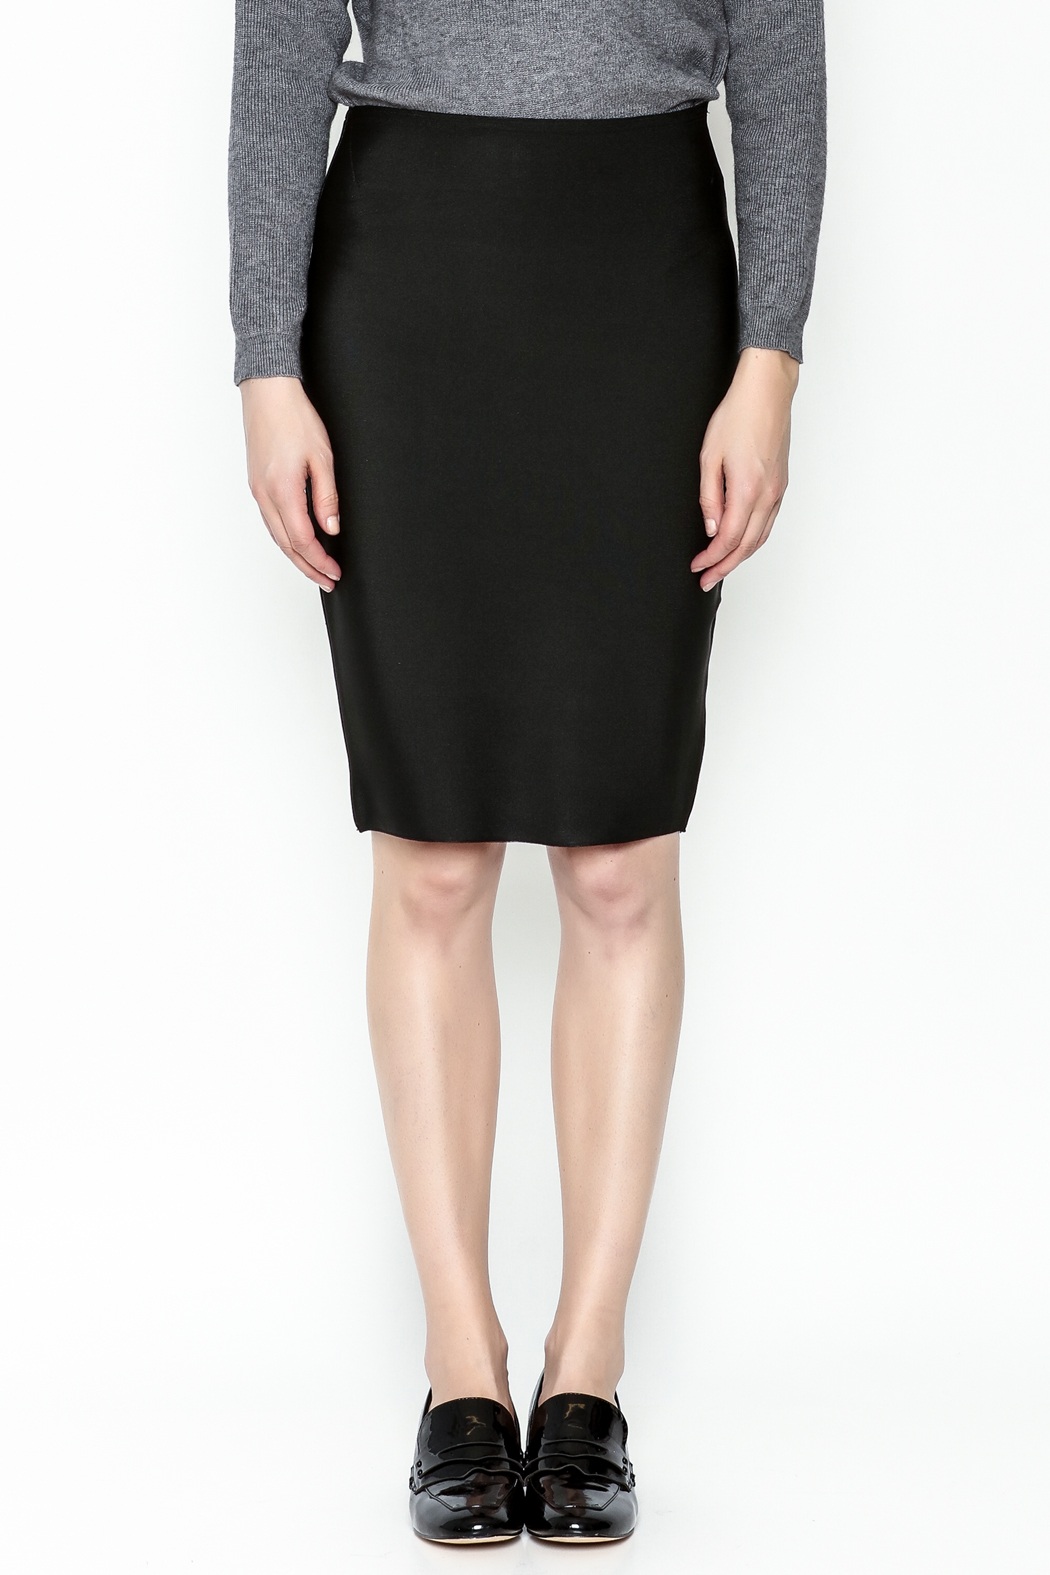 Wow Couture Bandage Skirt - Front Full Image